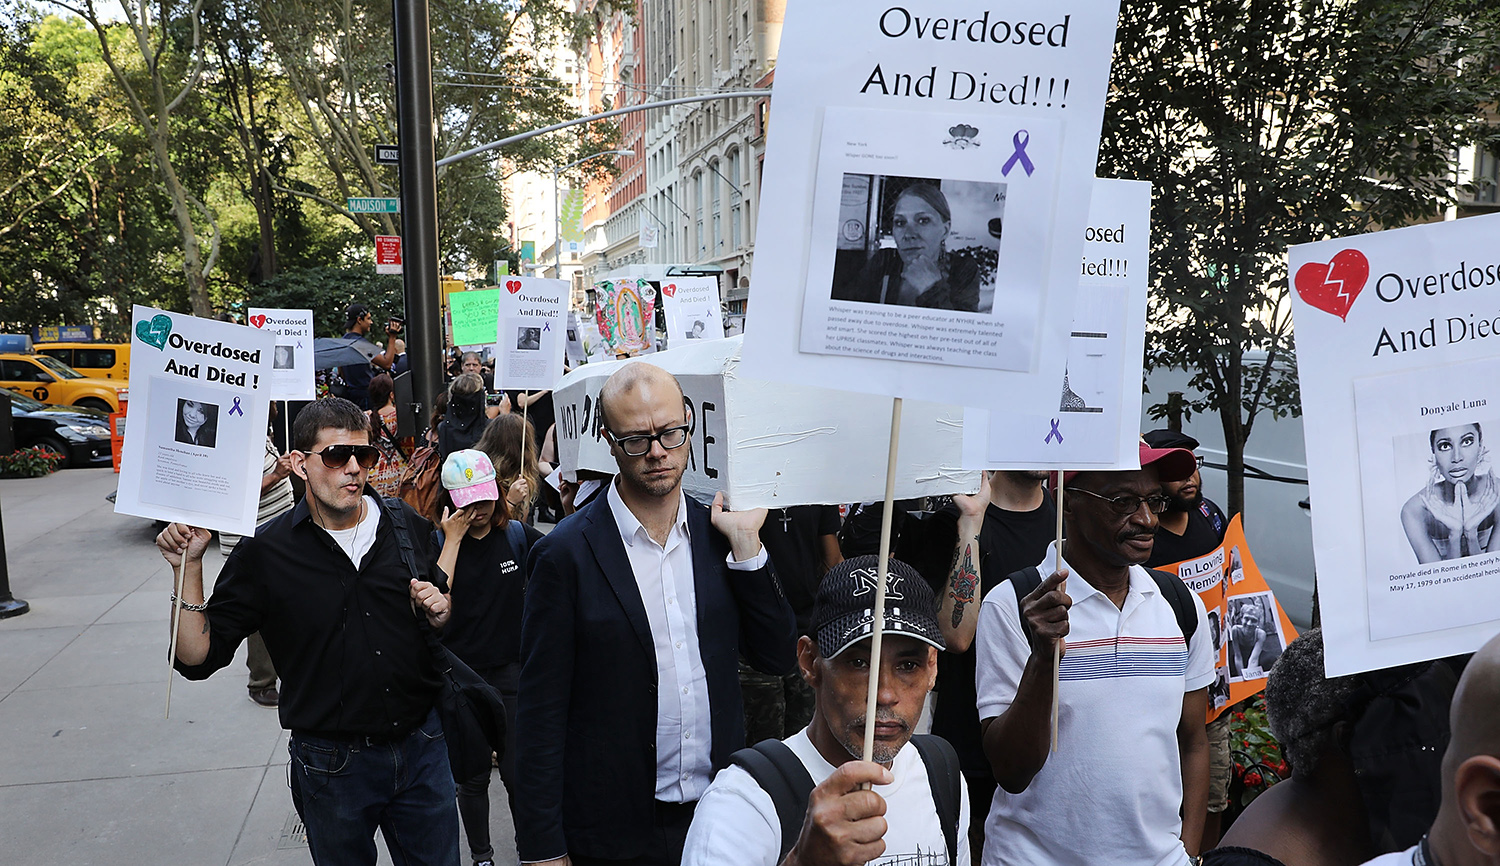 A march on Overdose Awareness Day in 2017 in New York City. Spencer Platt/Getty Images.